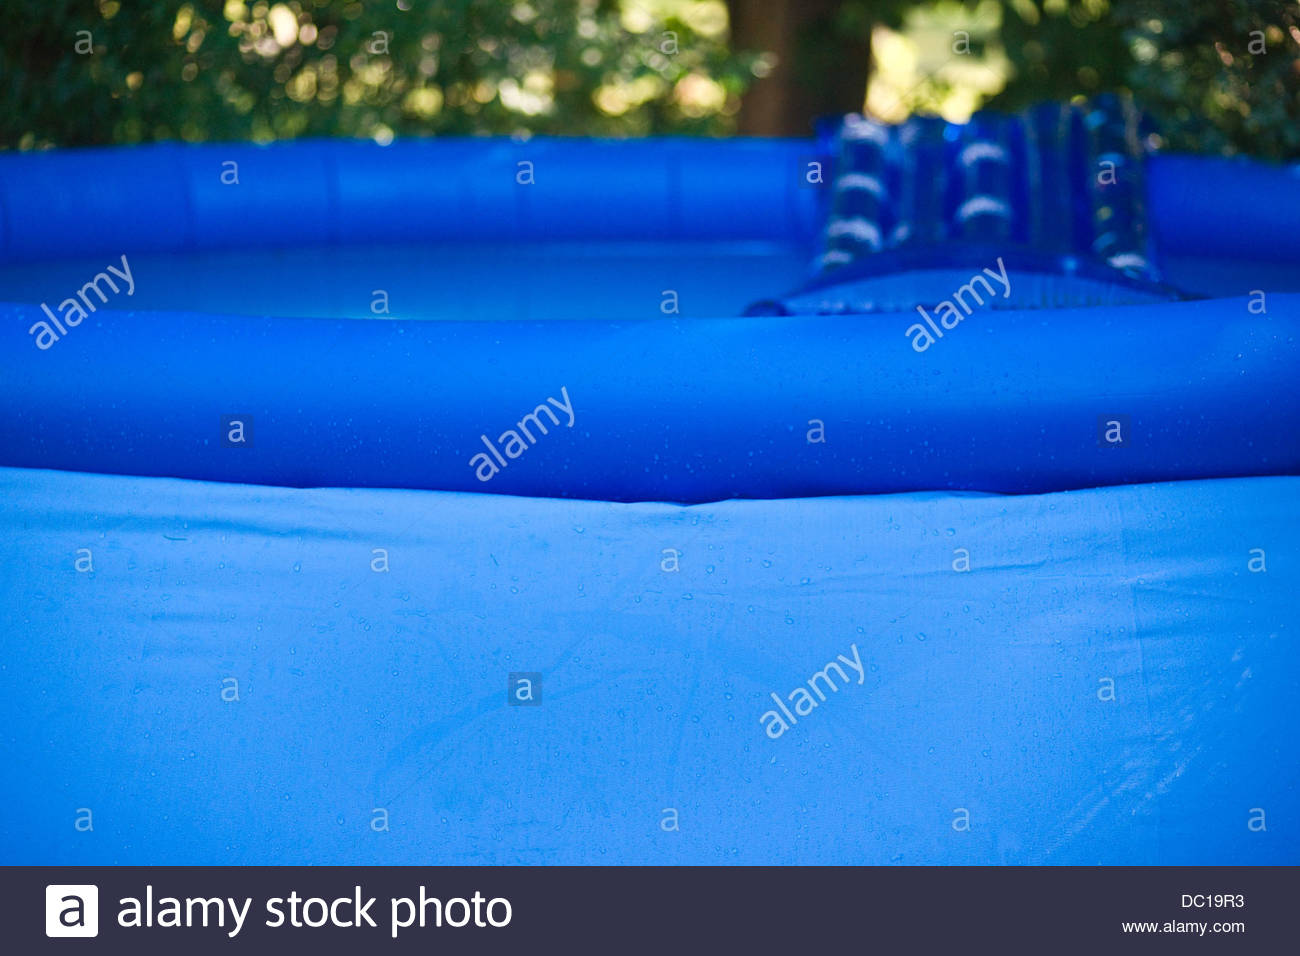 blue plastic inflatable swimming pool - Stock Image